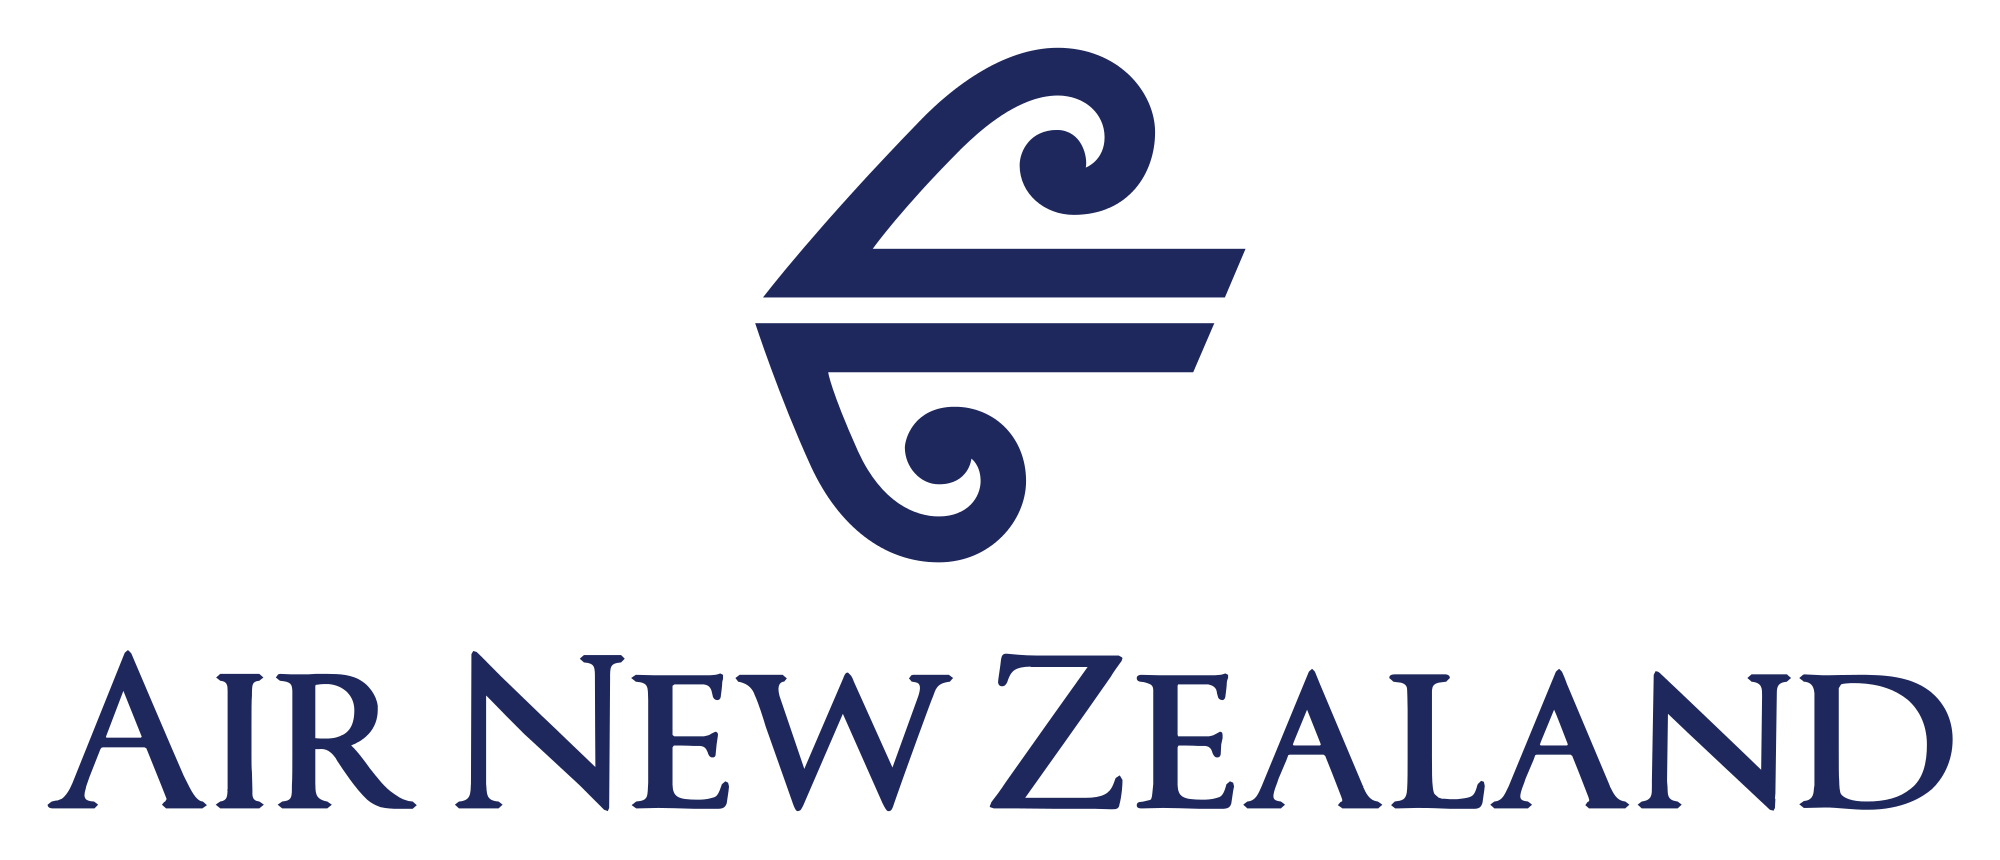 Compare Air New Zealand Credit-card Plans